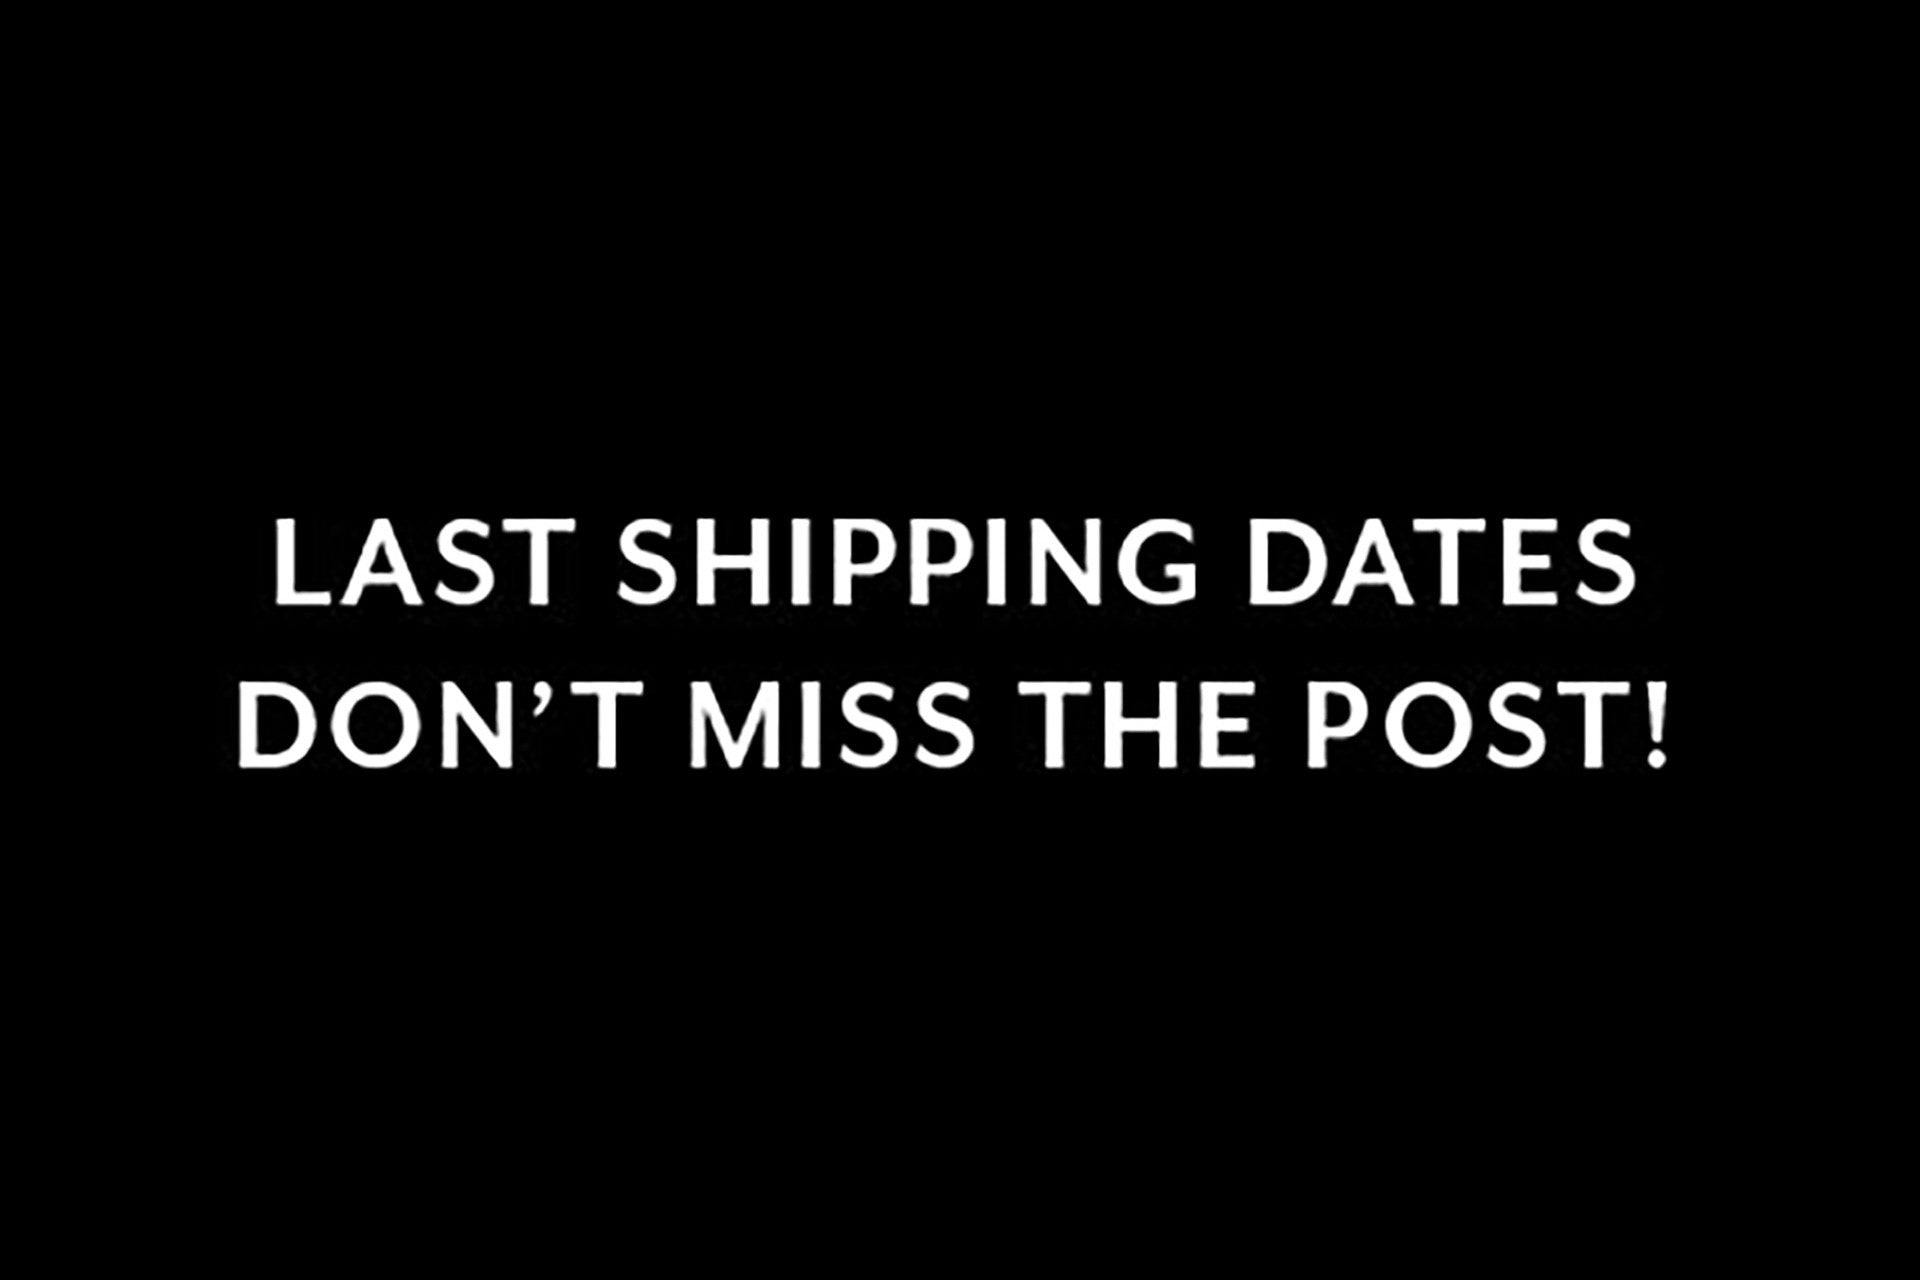 SPECIAL EVENT: LAST SHIPPING DATES PRE XMAS